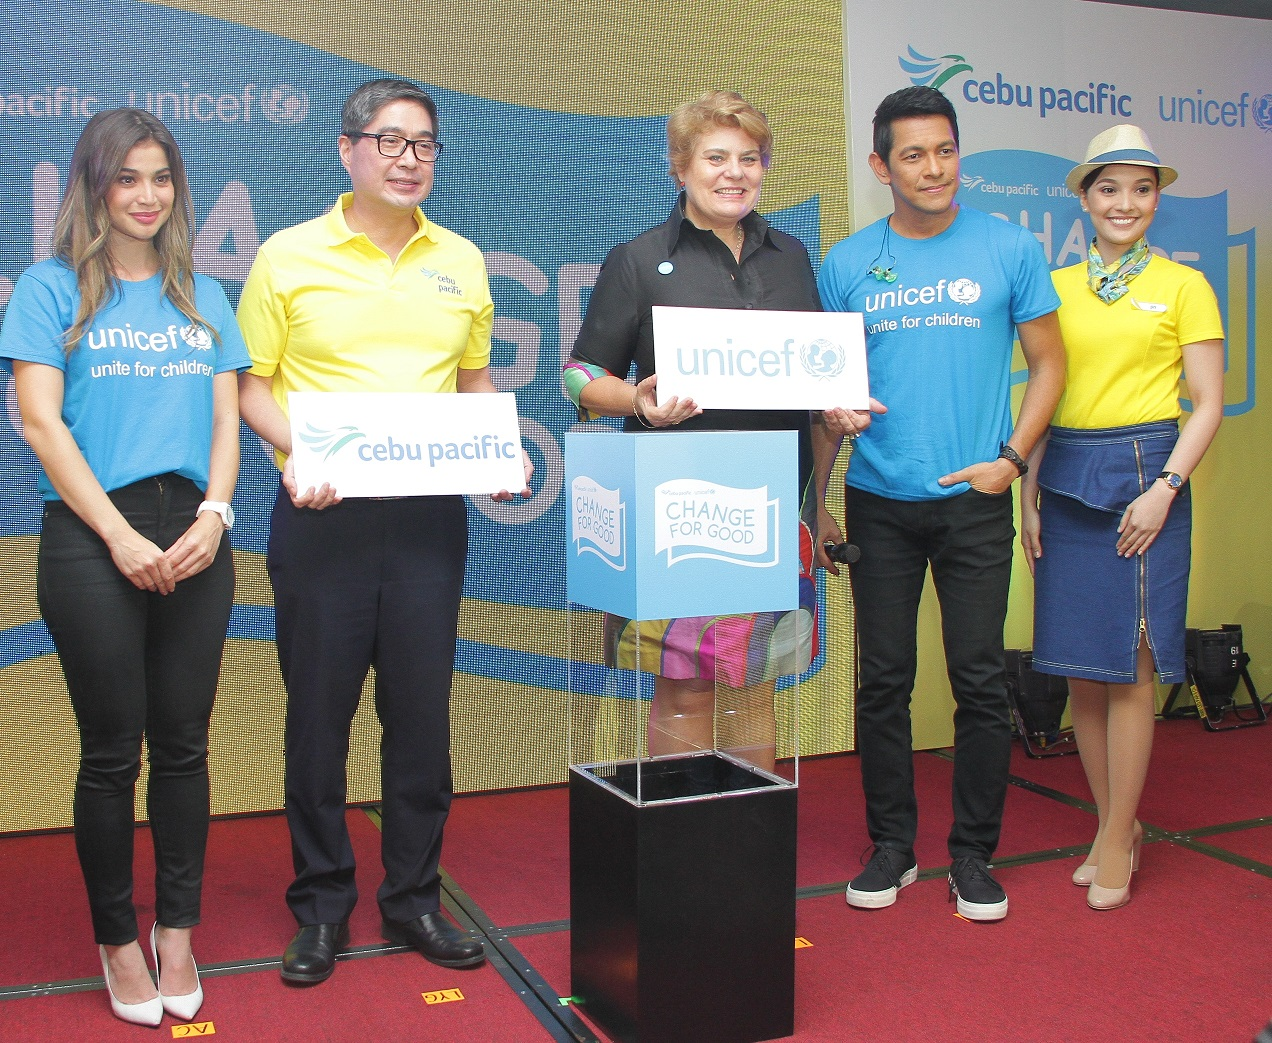 Cebu Pacific and UNICEF partner to launch Change for Good program to bring health and nutrition to infants and young children in the Philippines